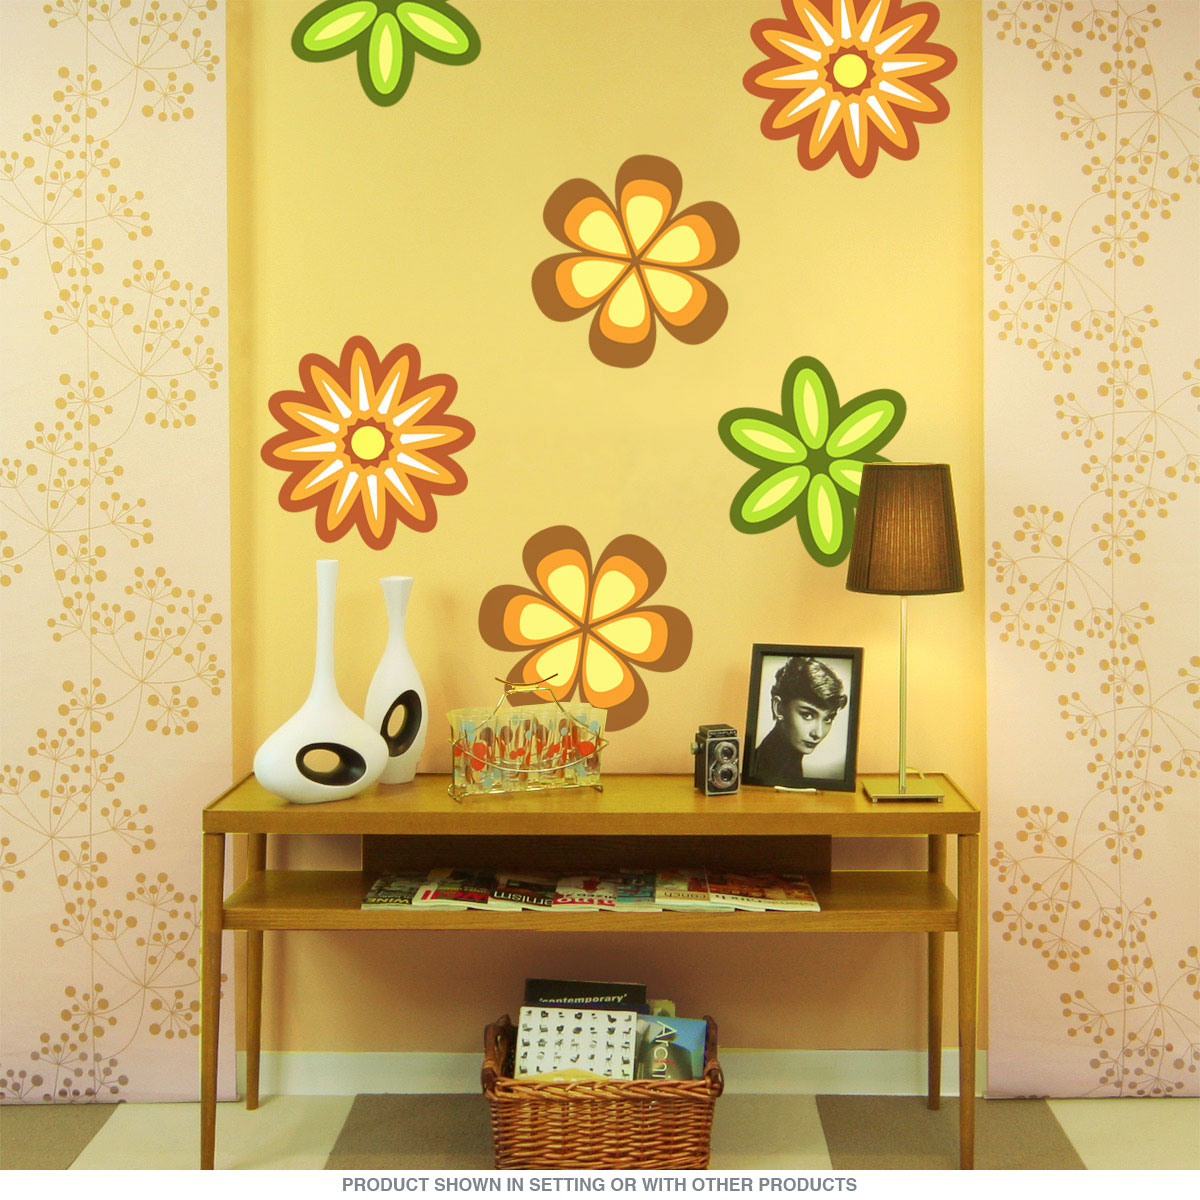 Mod Flower 70s Style Cutout Wall Decal Orange | Removable Wall ...